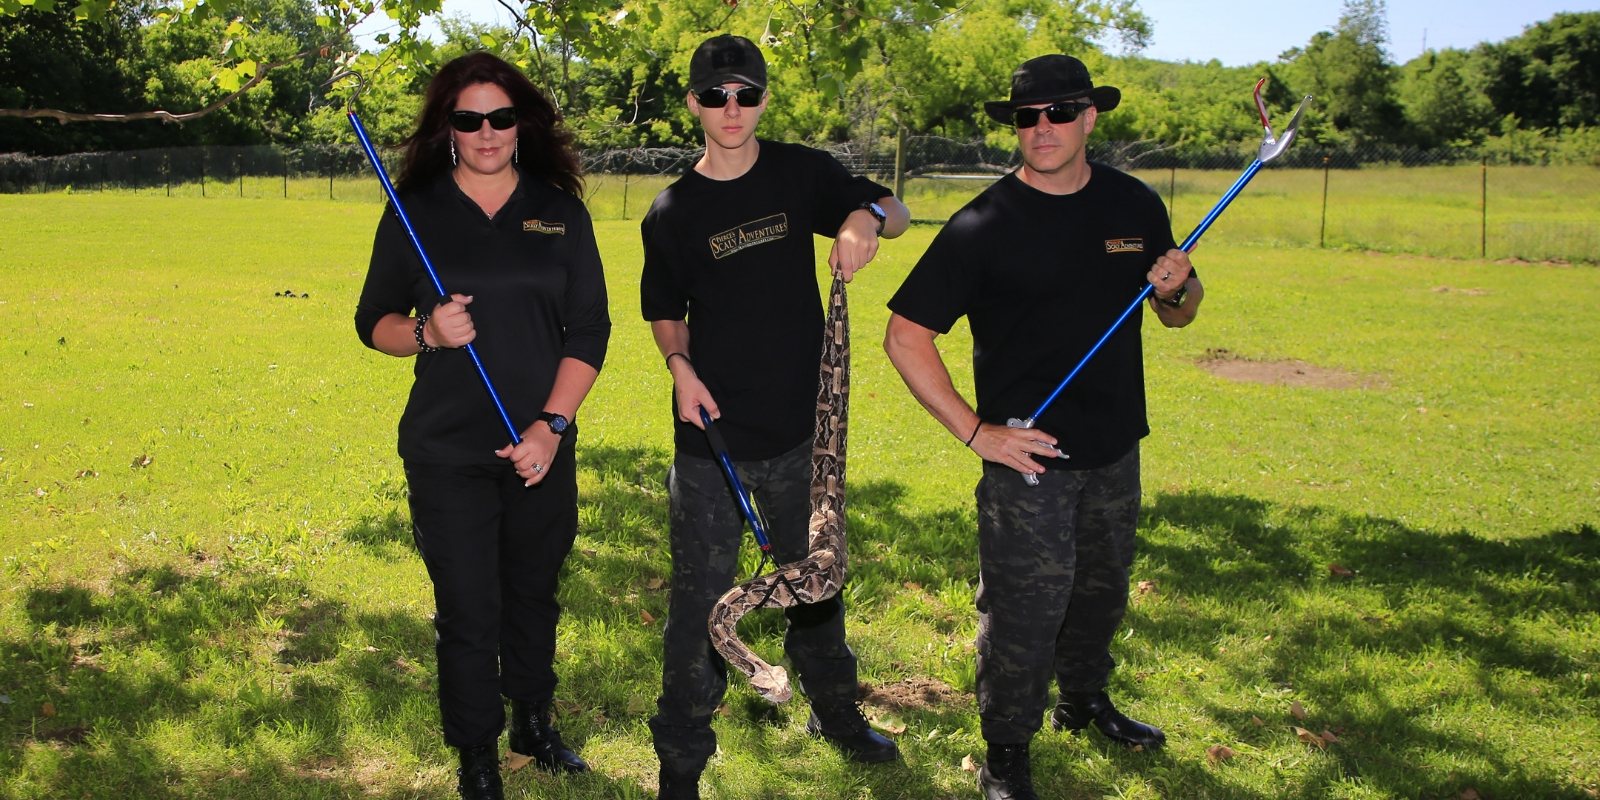 Pierce Curran holds gaboon viper along with family members holding Midwest Tongs snake handling tools